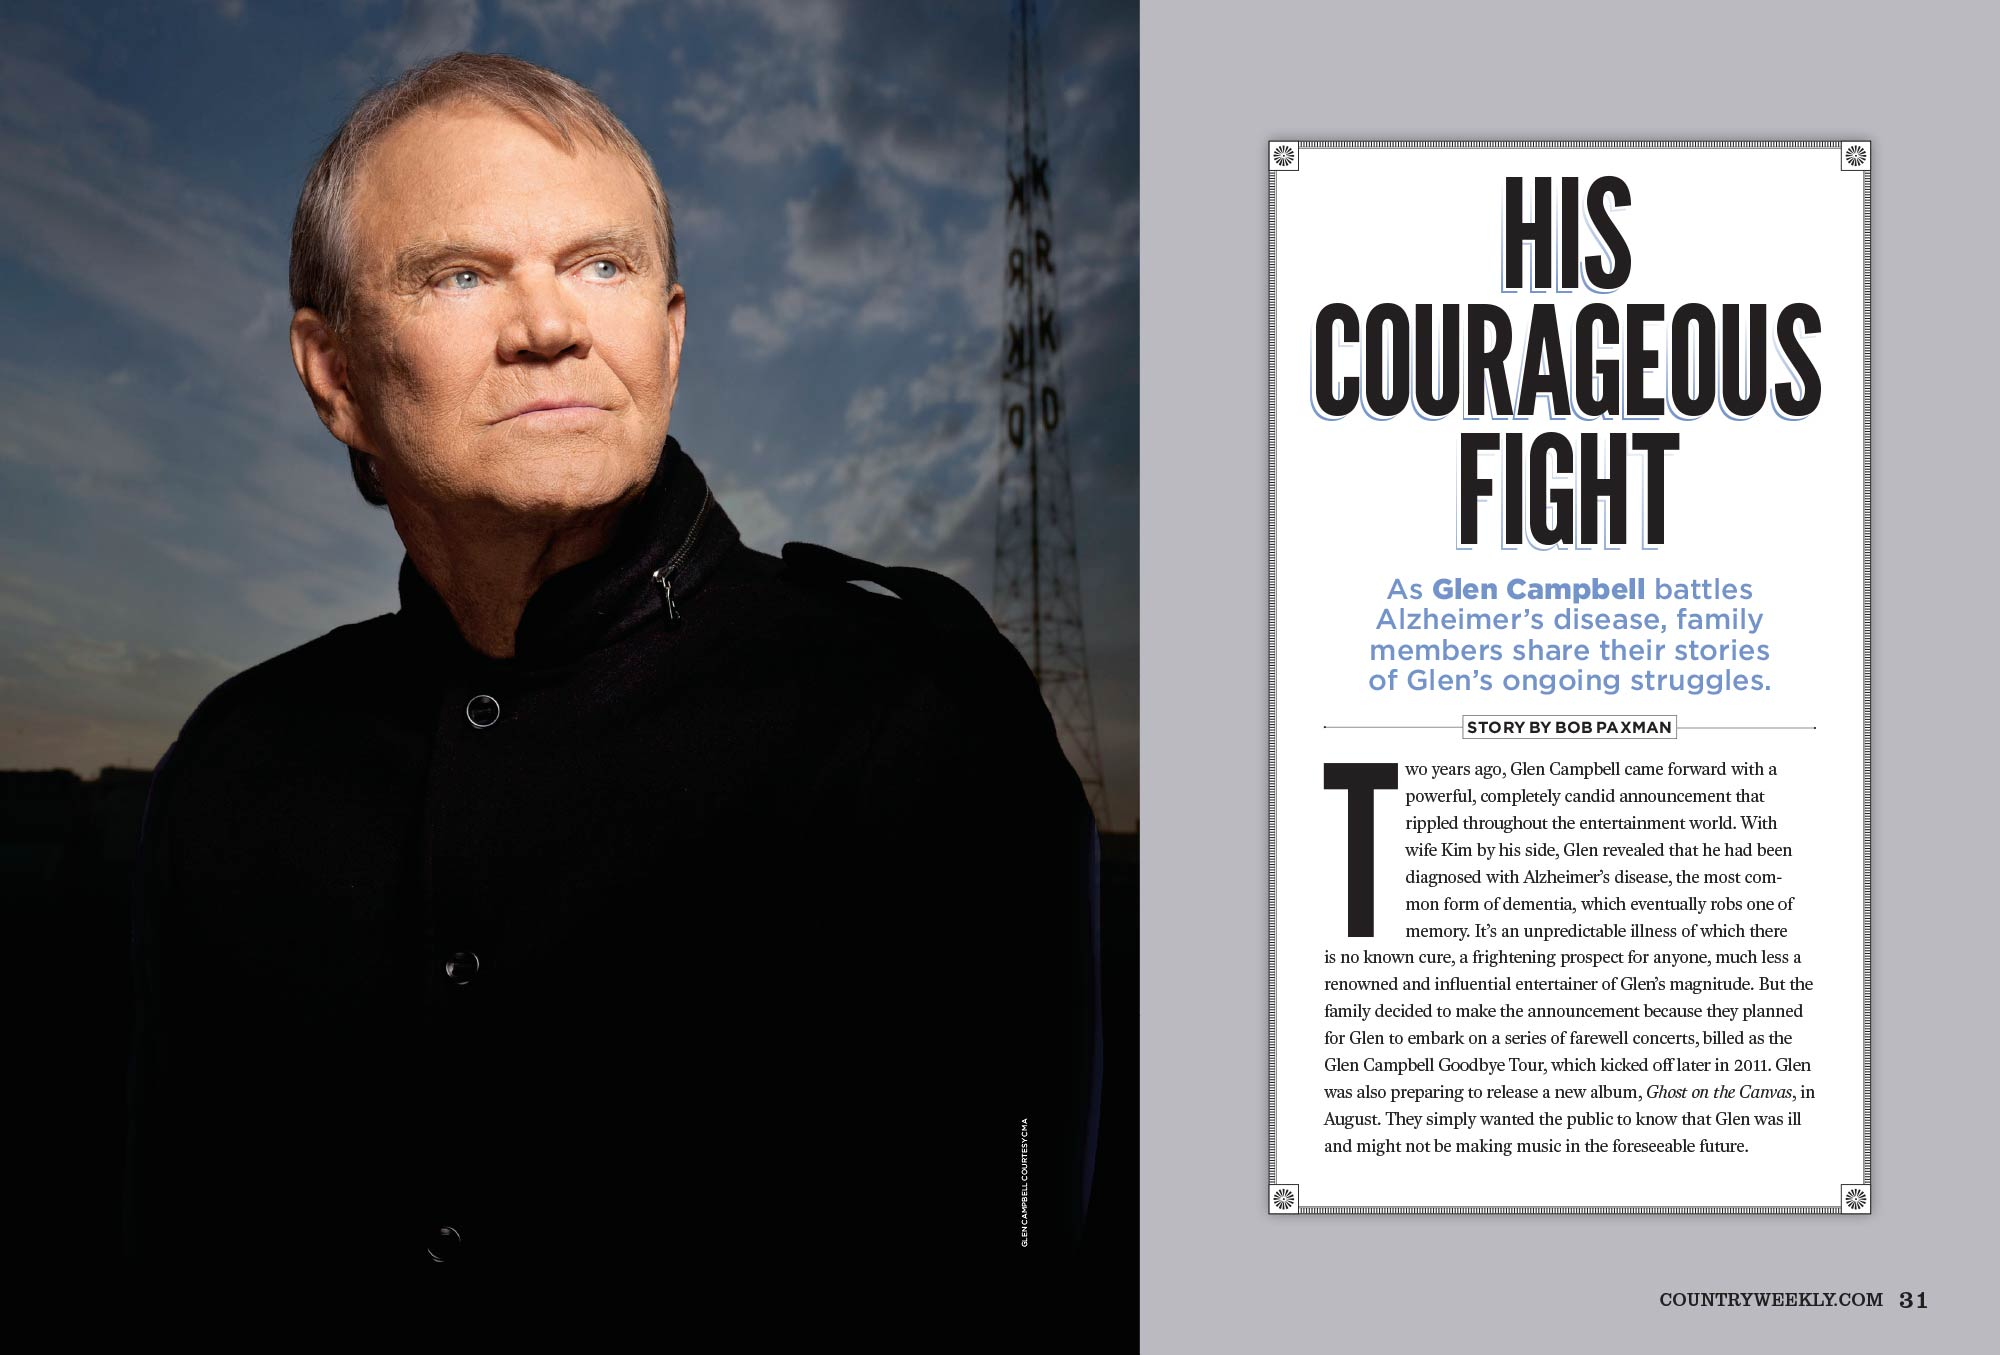 Glen Campbell: His Courageous Fight with Alzheimer's Disease